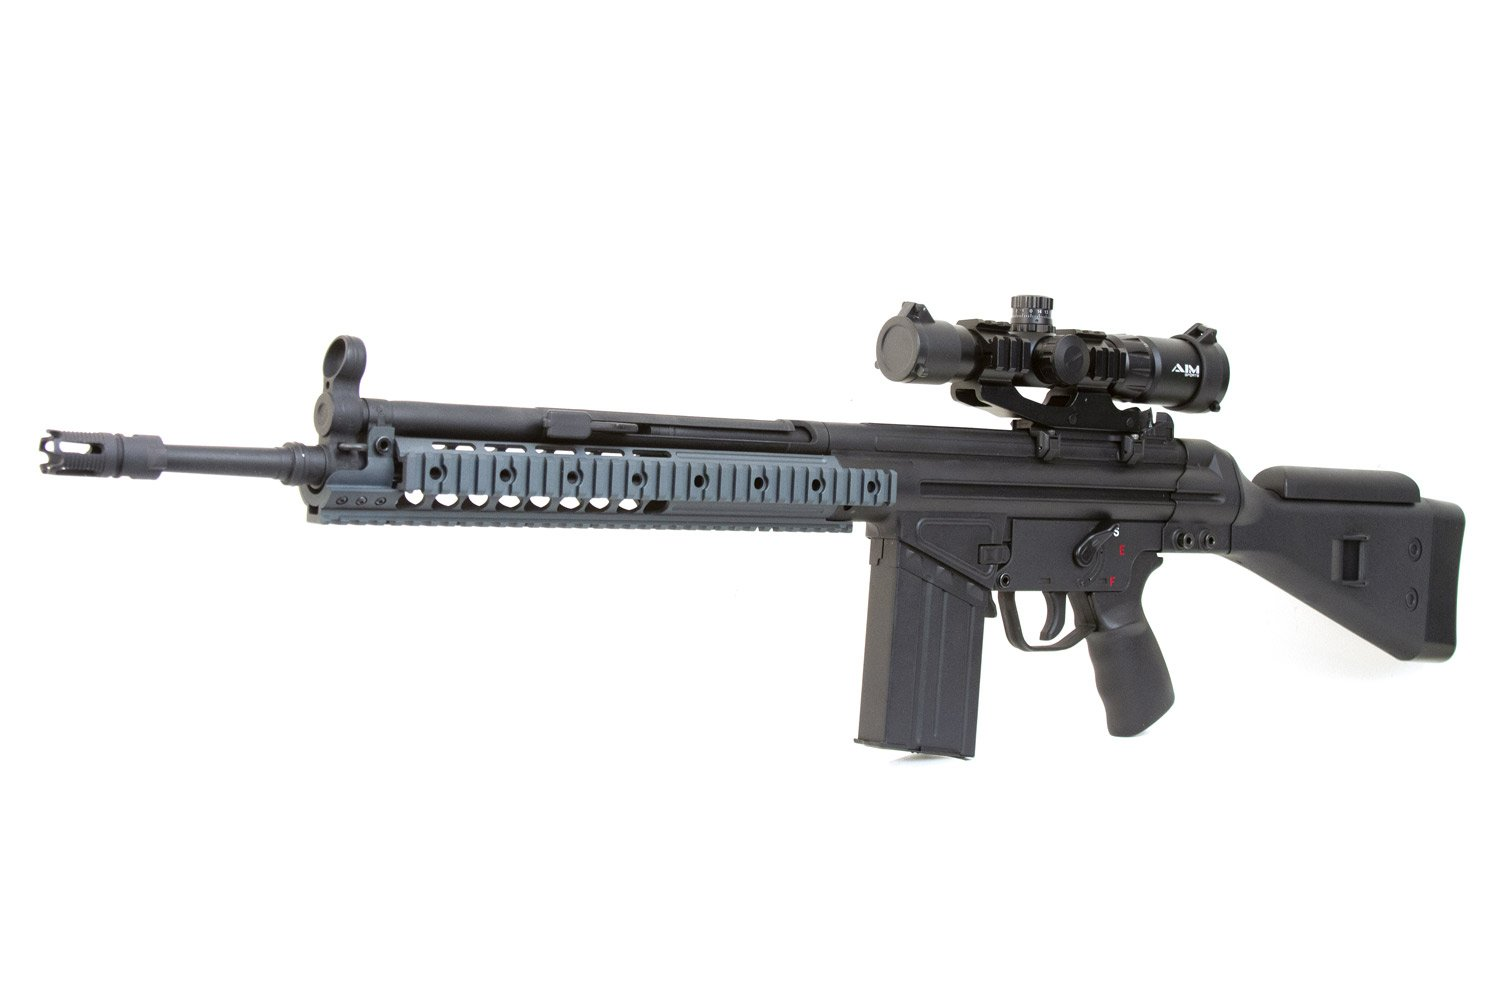 Airsoft Gi Custom G3 Recon Aeg Airsoft Rifle